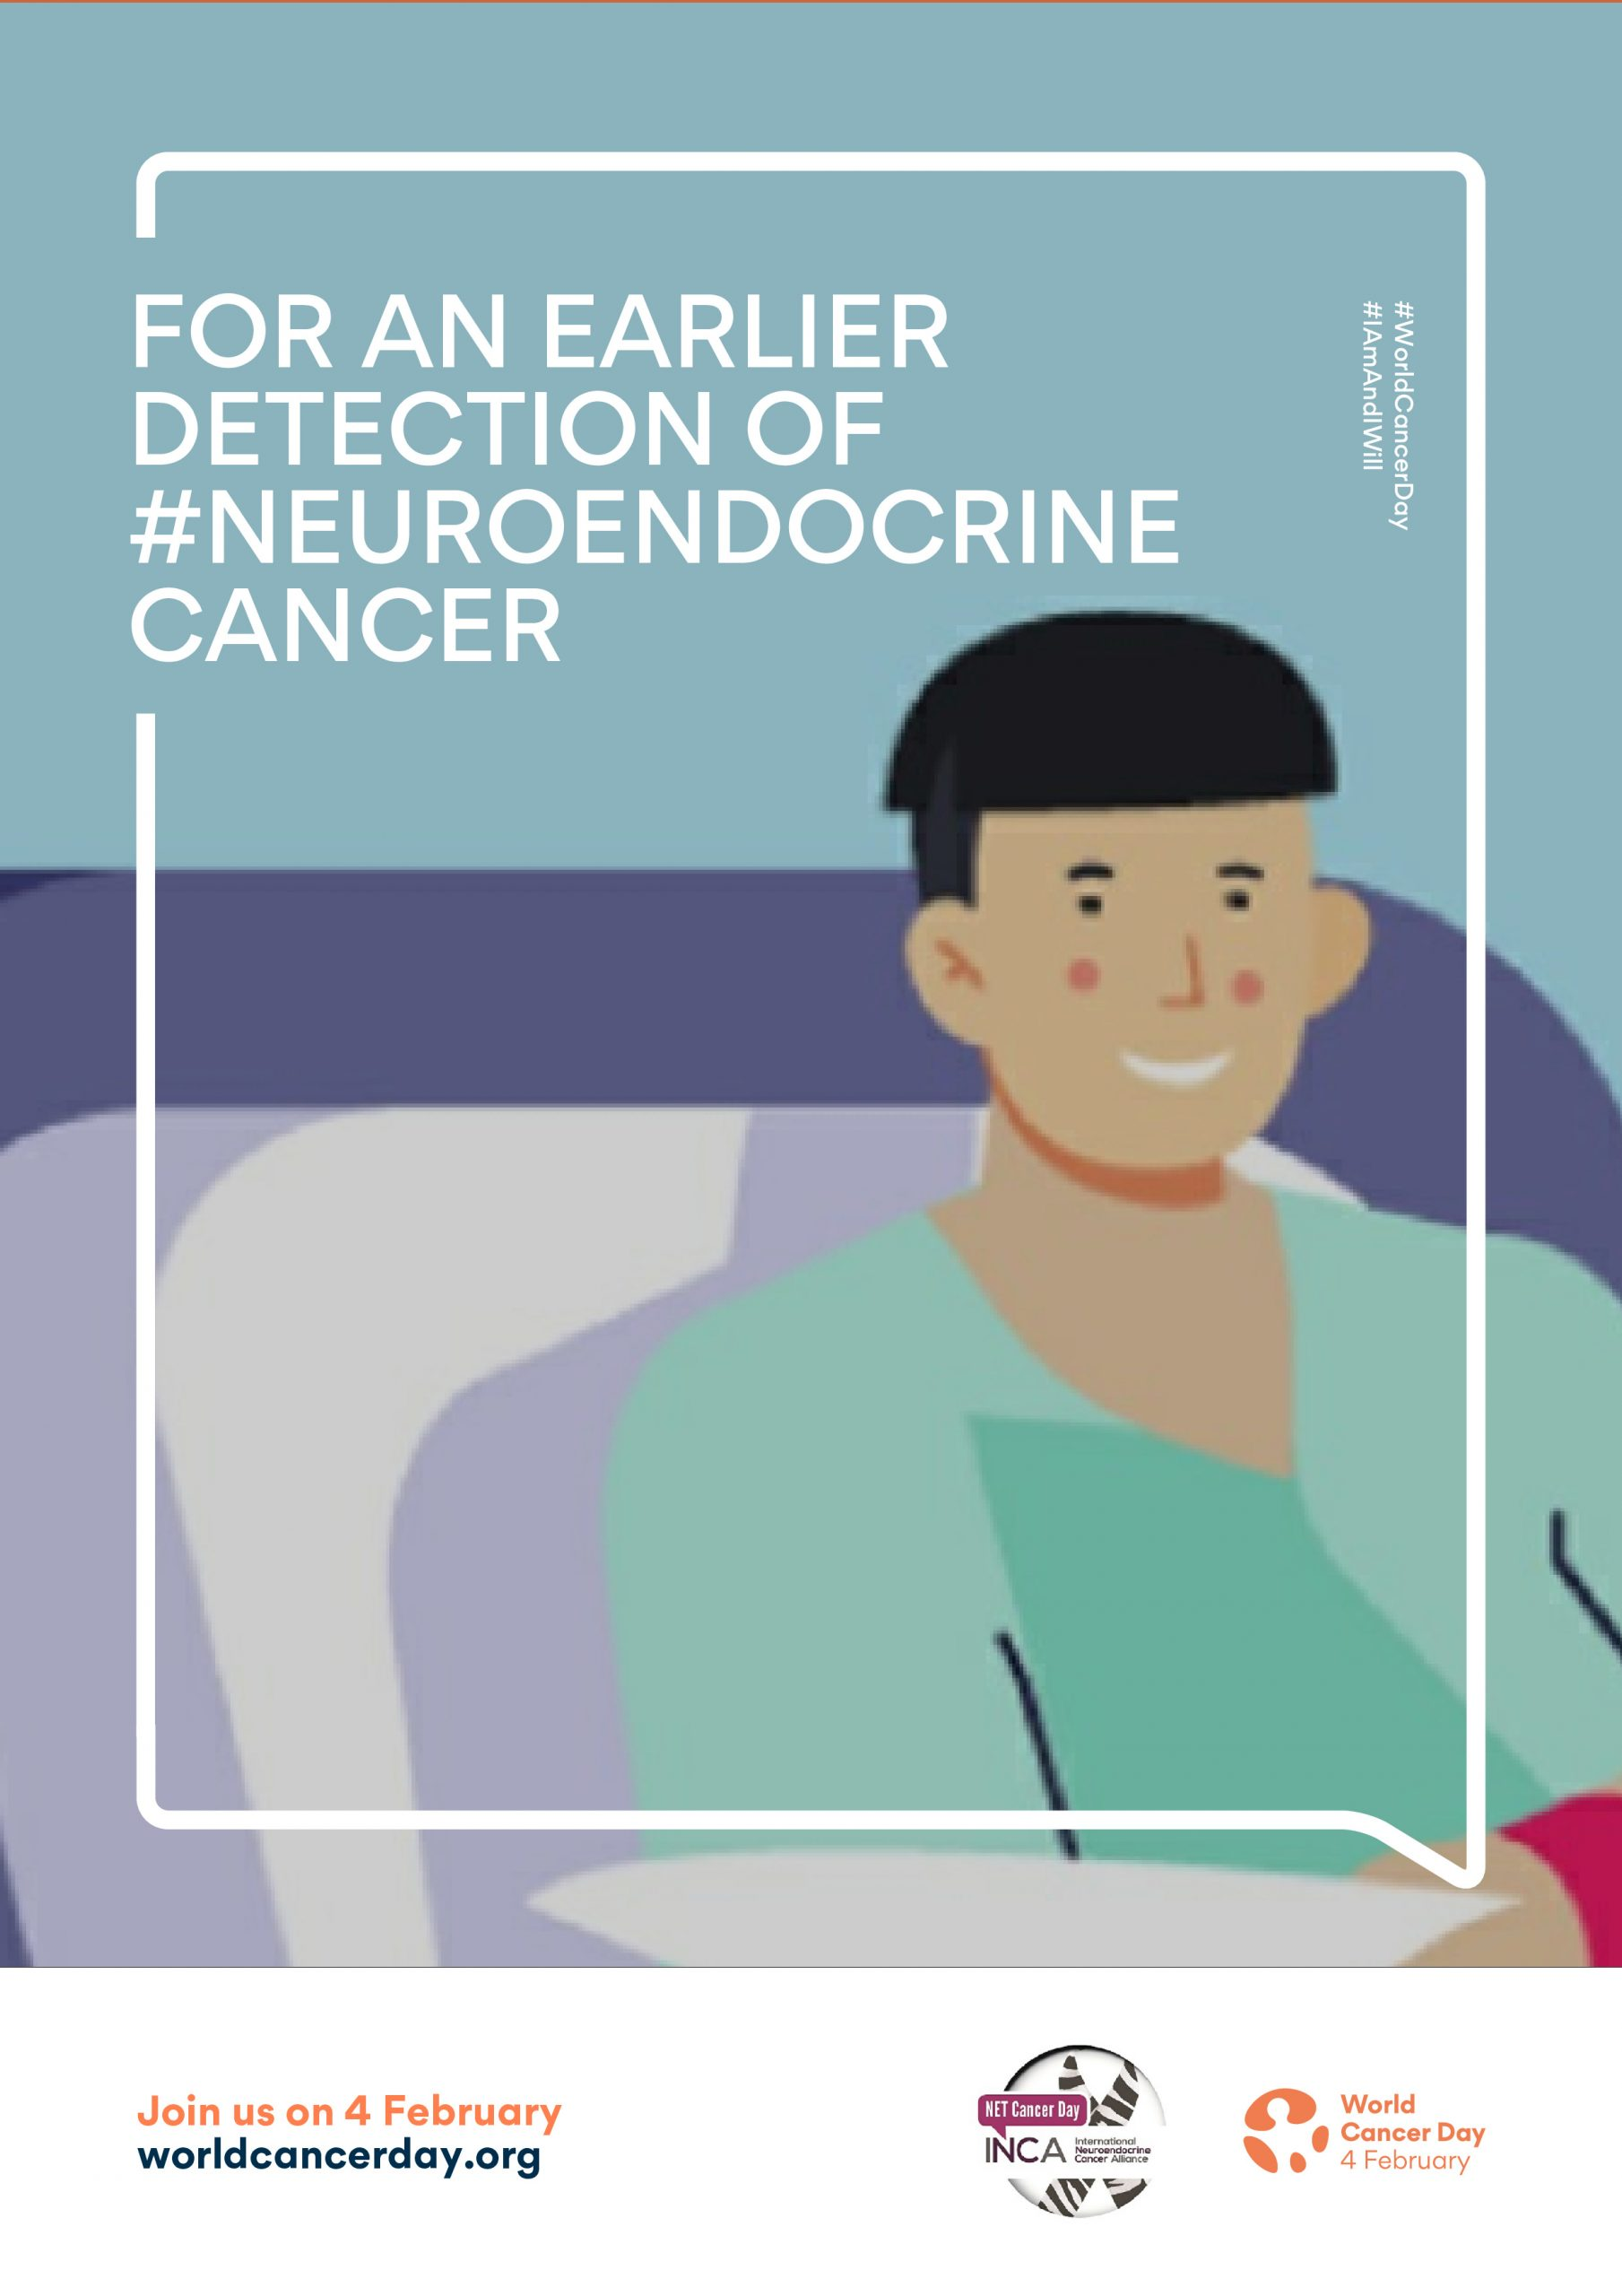 INCA Calls for Improvements in Neuroendocrine Cancer Detection on World Cancer Day